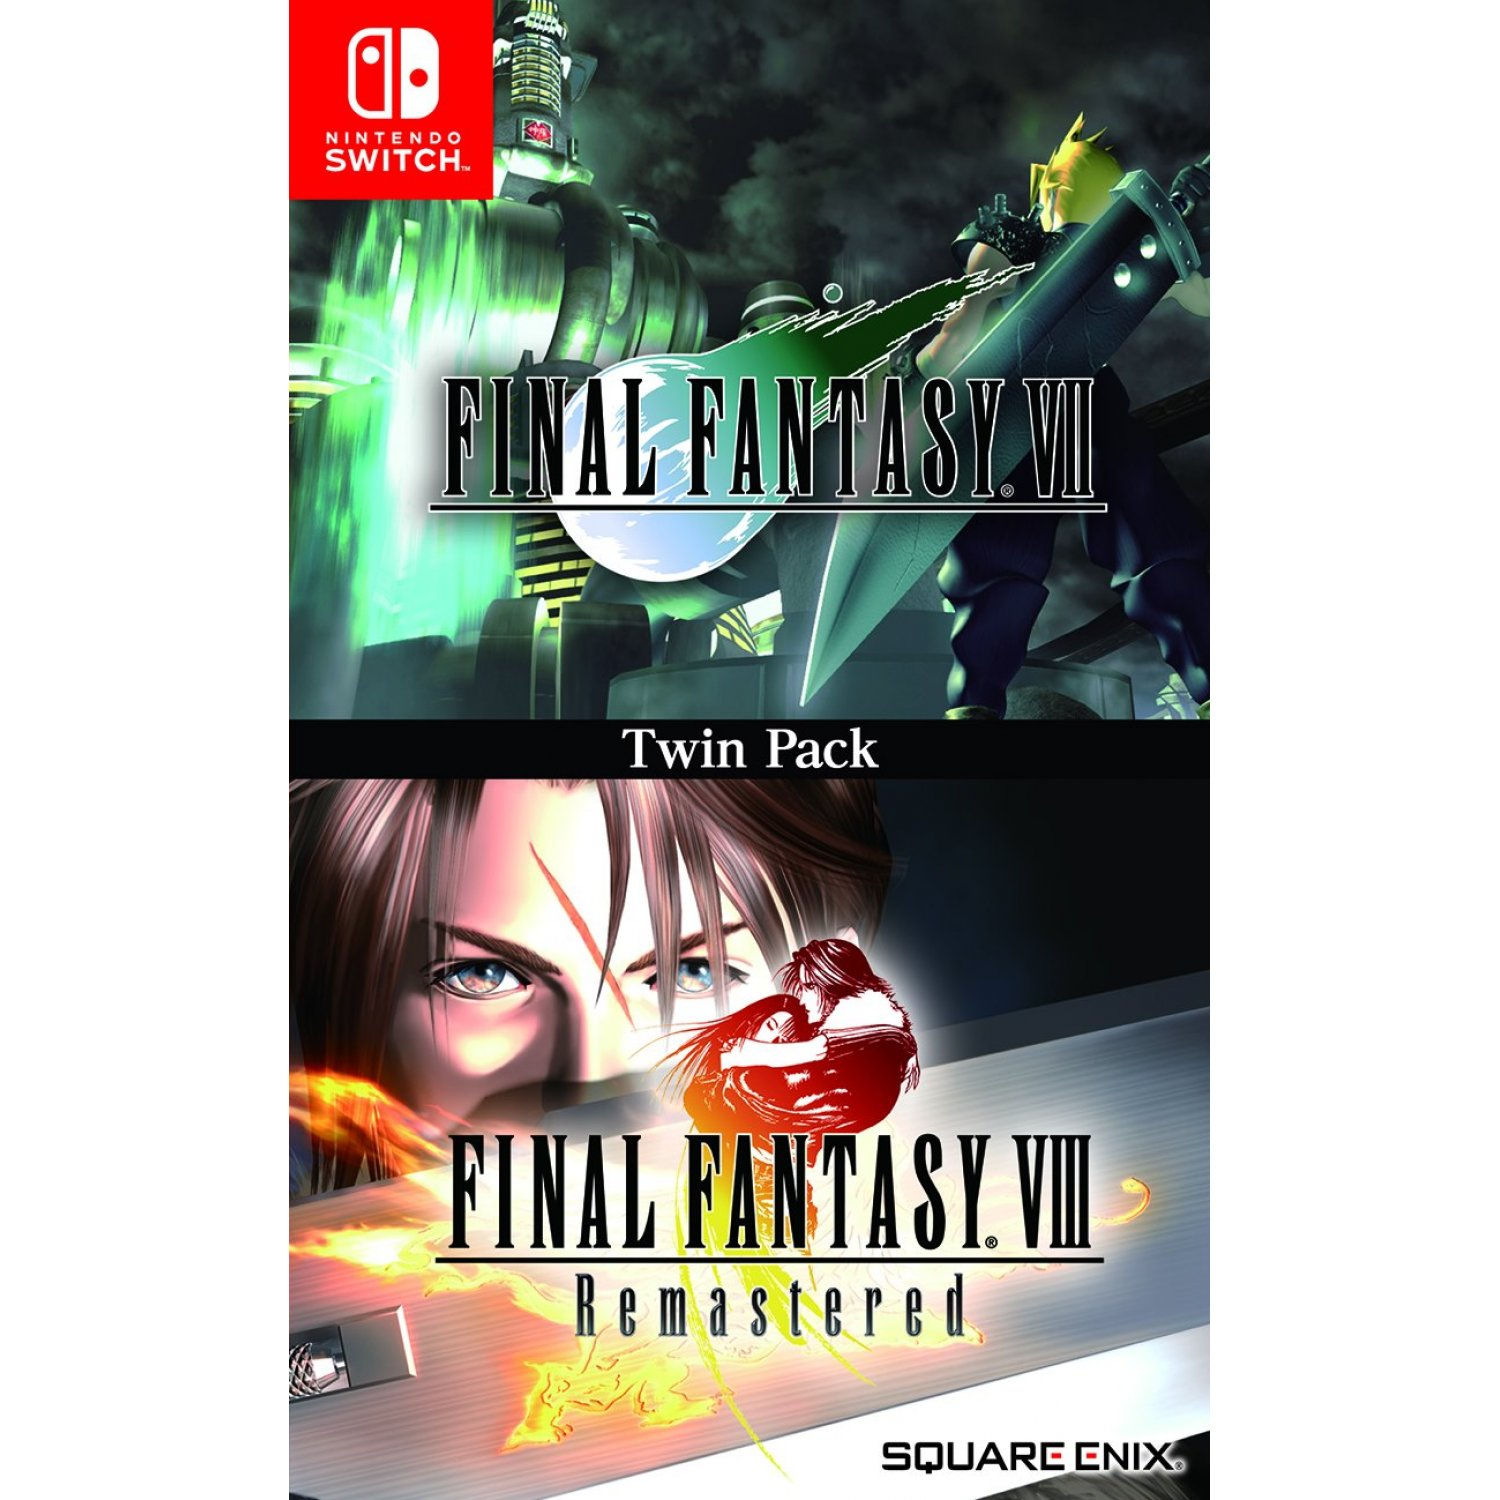 Final Fantasy VII + Final Fantasy VIII Remastered Twin Pack (angol felirattal)